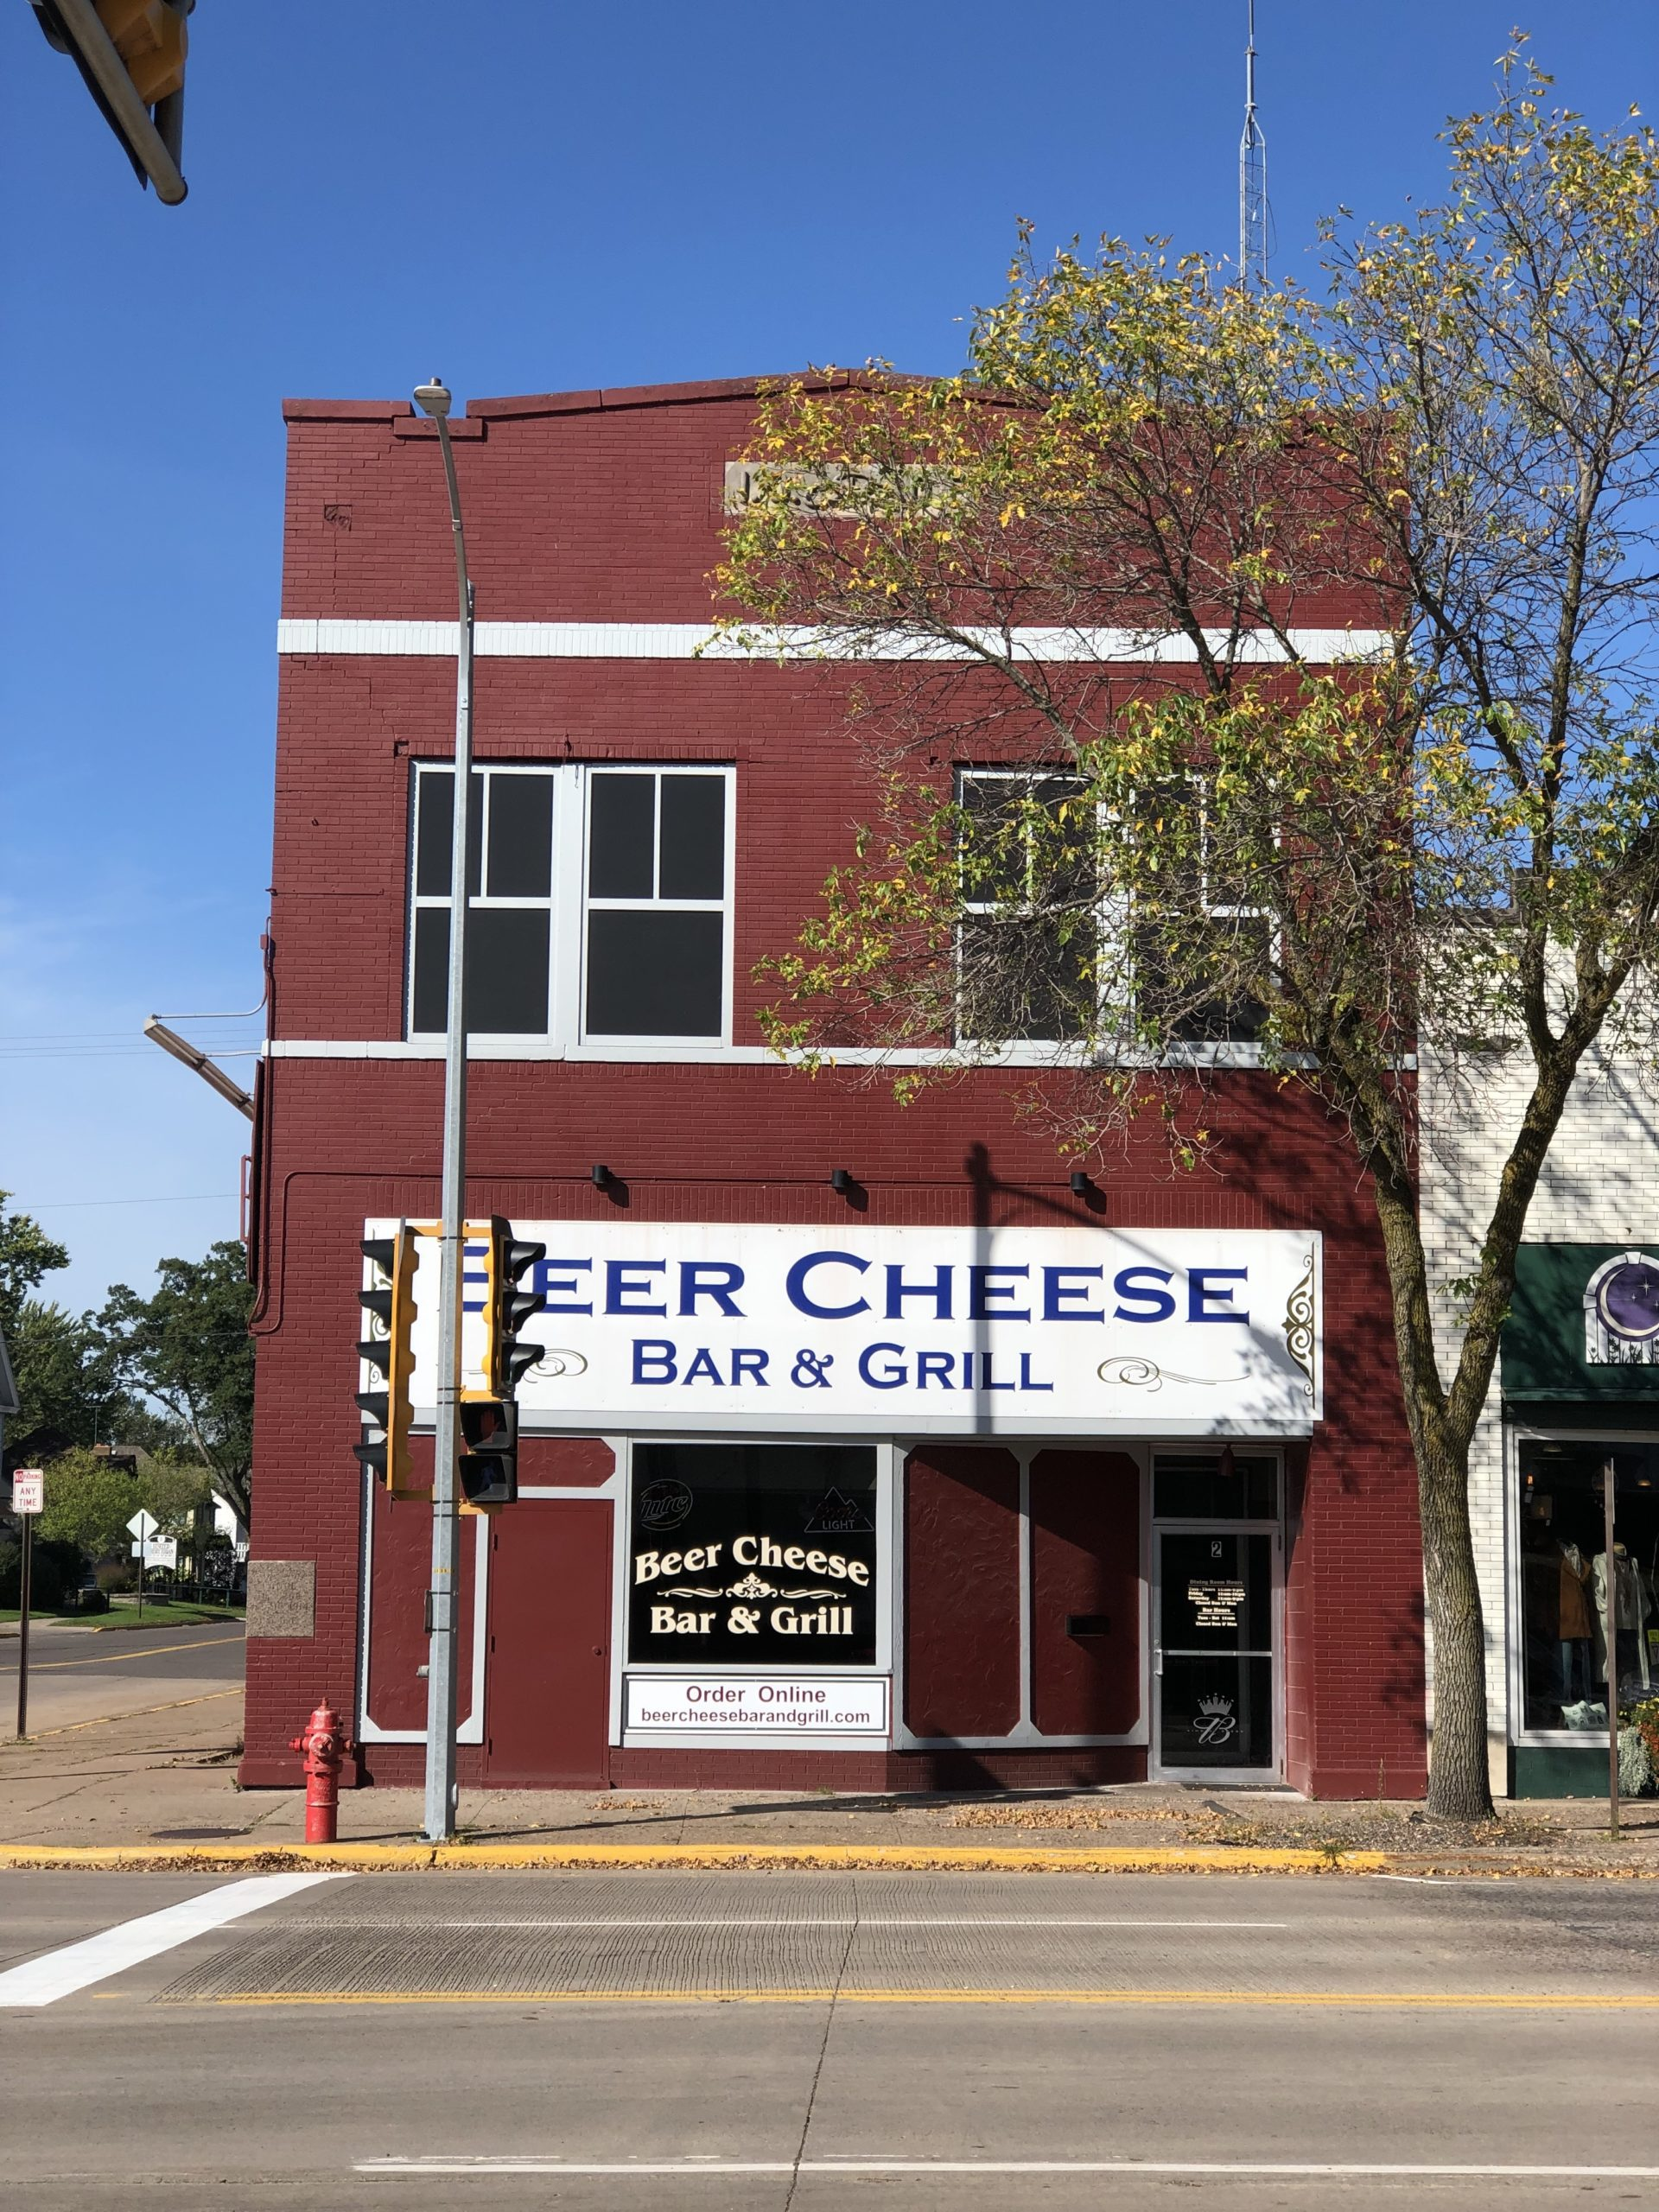 Beer Cheese Bar & Grill